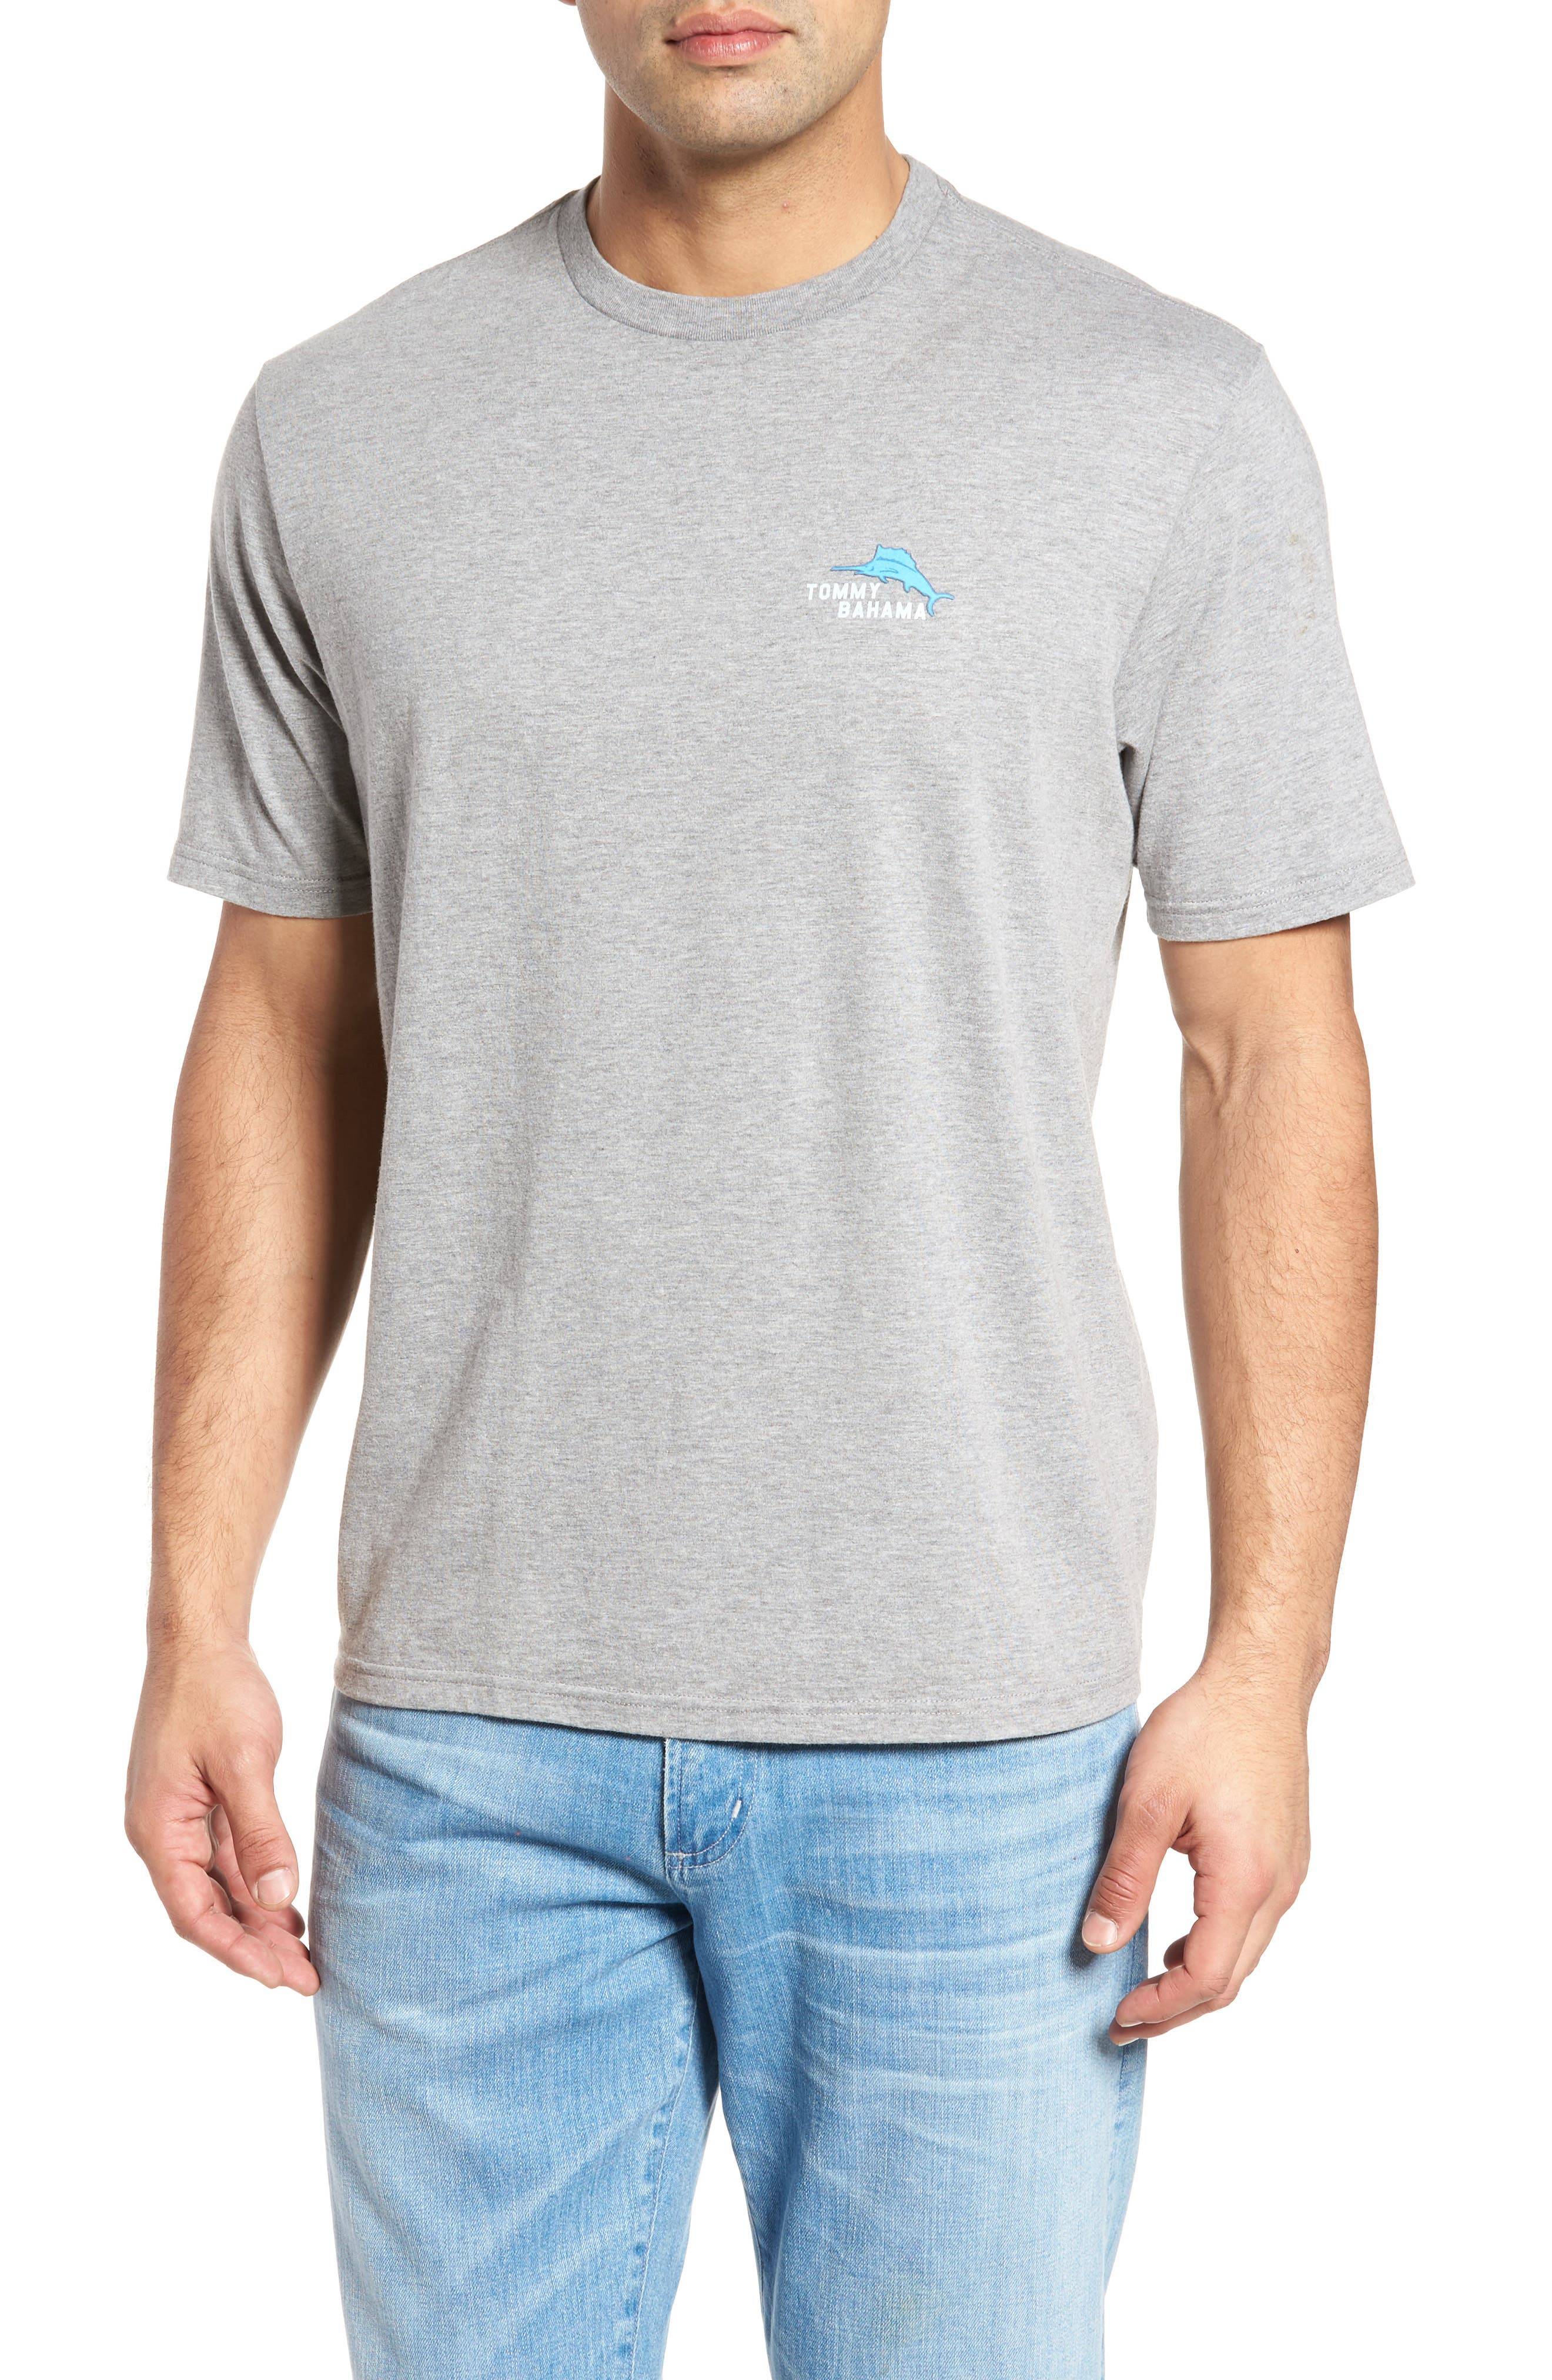 Tommy Bahama Yer Out T-Shirt